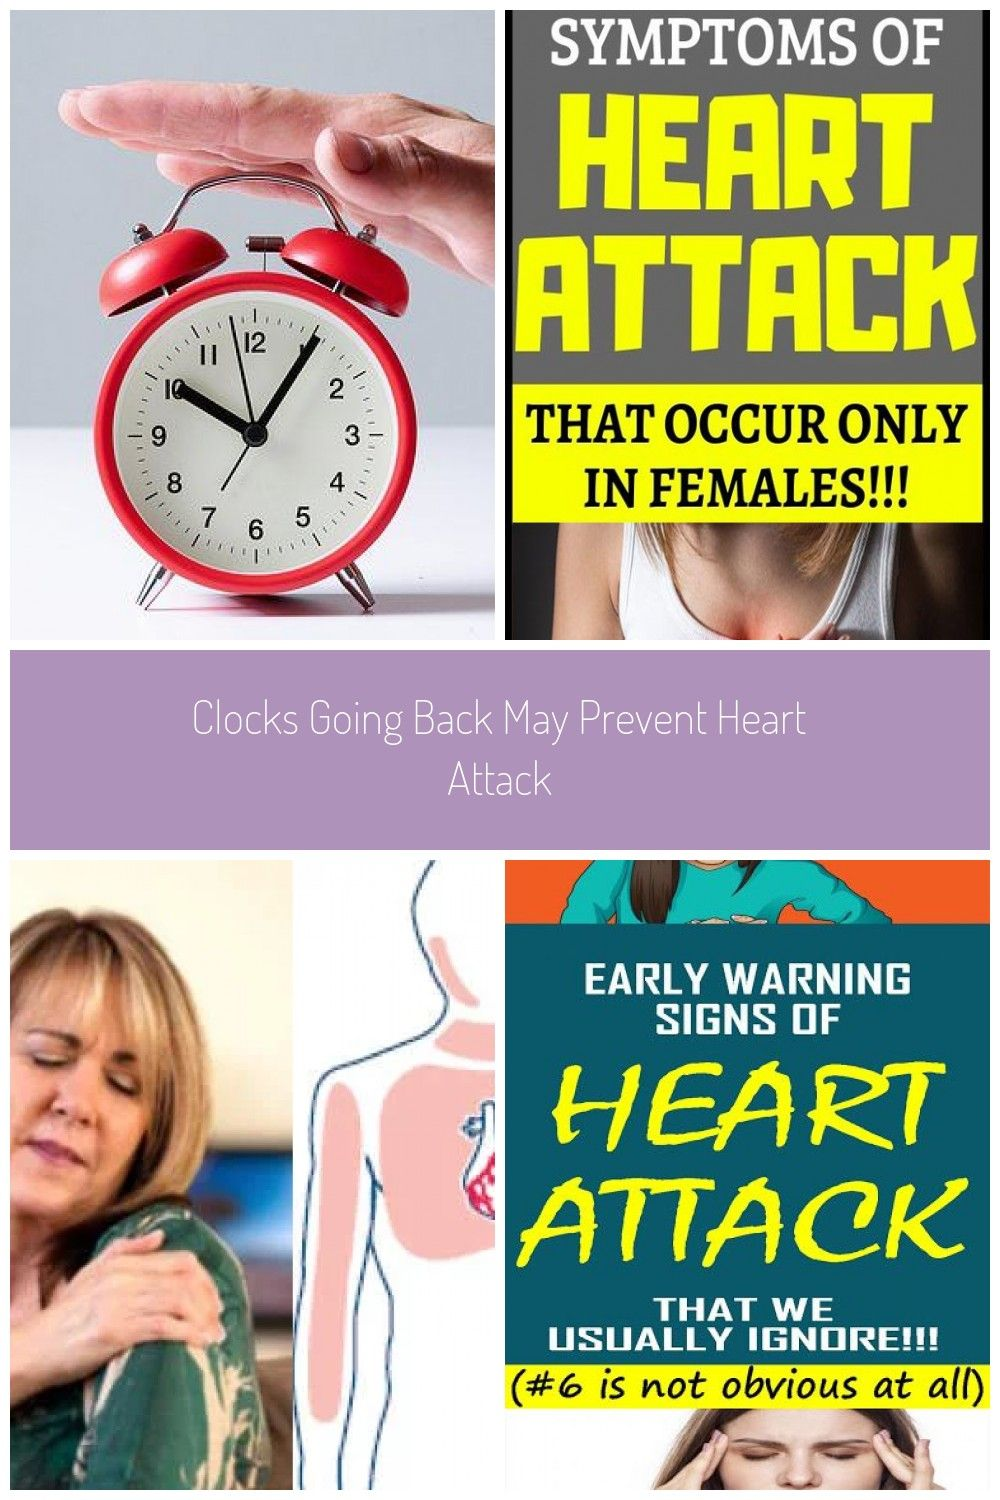 Number of potentially fatal heart attacks drops by 20 per cent after clocks go back study shows   Daily Mail Online attack Clocks going back may prevent heart attack